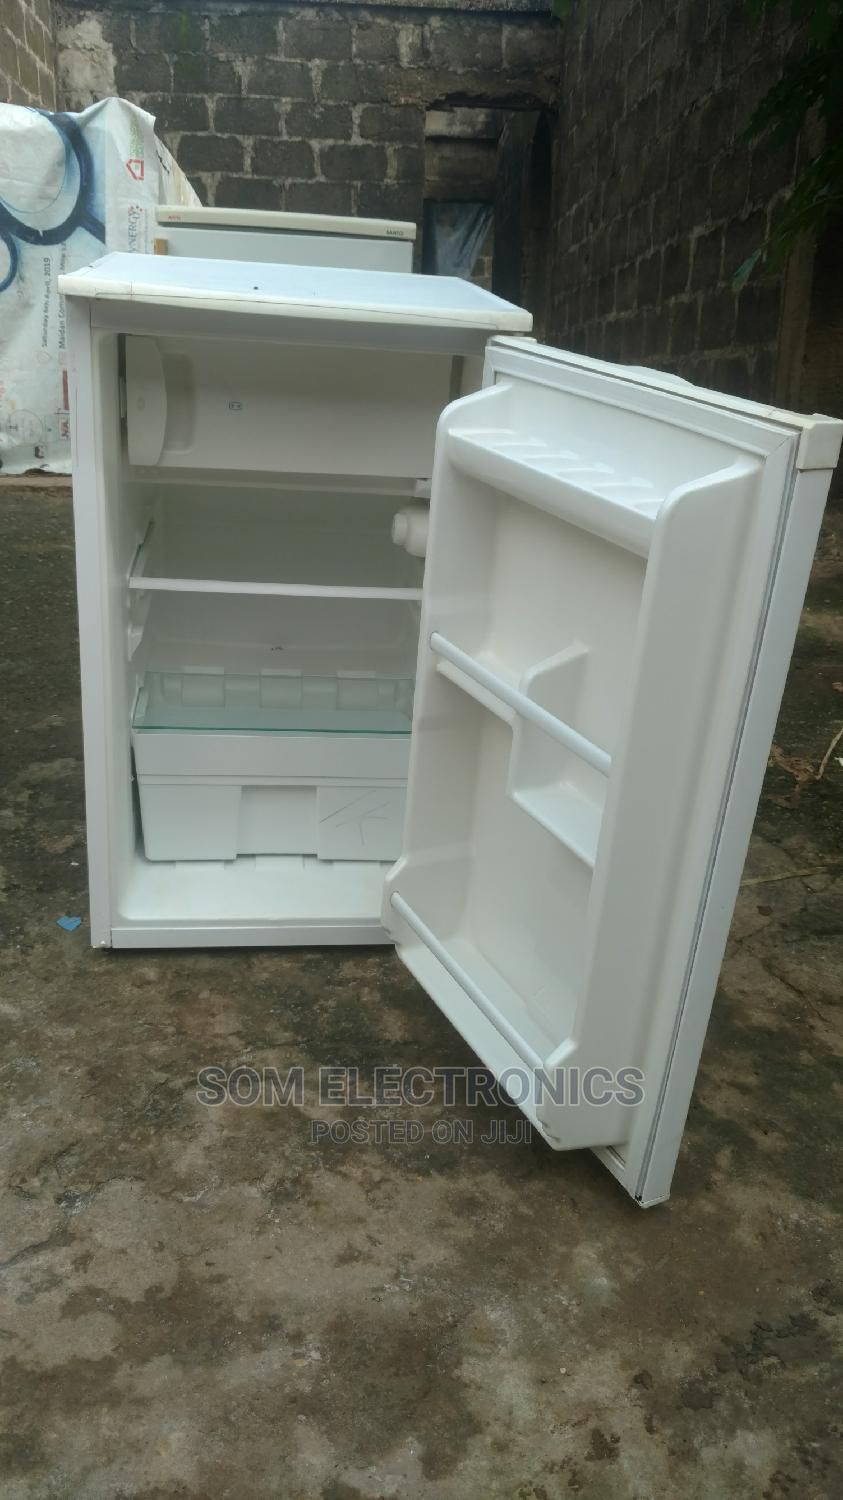 Newly Arrived Table Top Fridge Freezers   Kitchen Appliances for sale in Agege, Lagos State, Nigeria